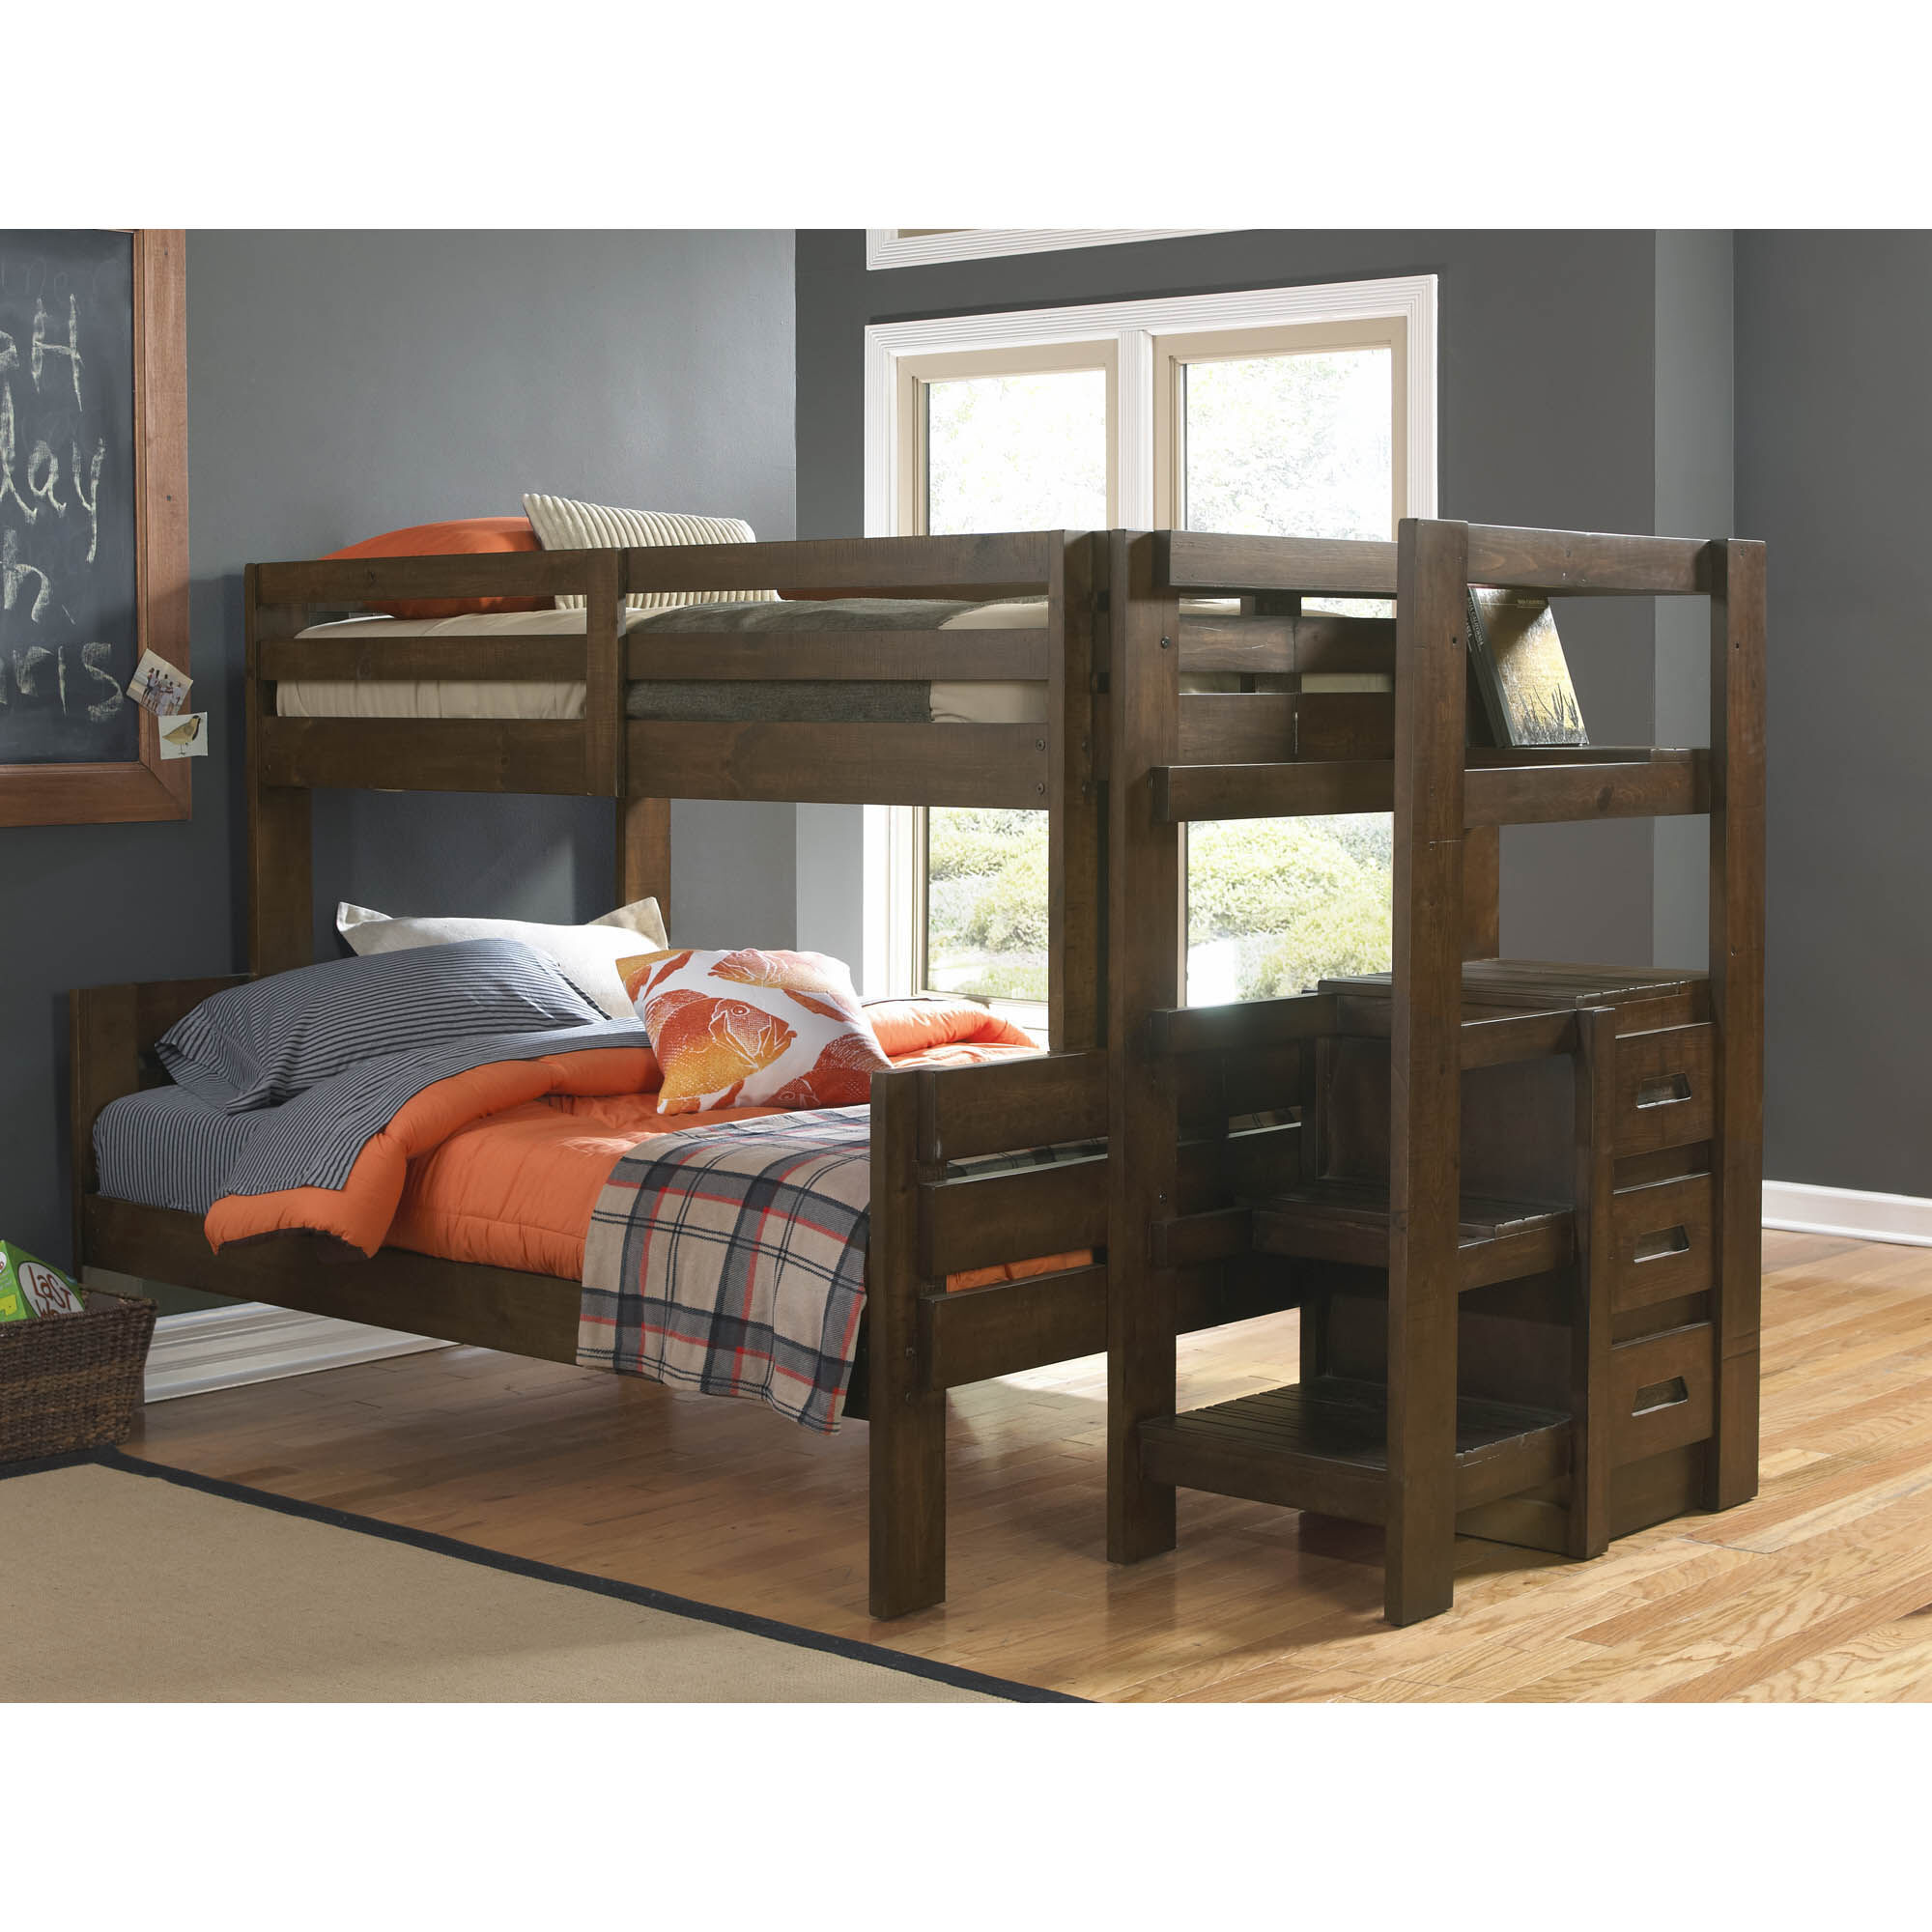 Double Bunks For Sale Oak Furniture West Bedroom Groups Twin Plus Full Storage Bunk Bed